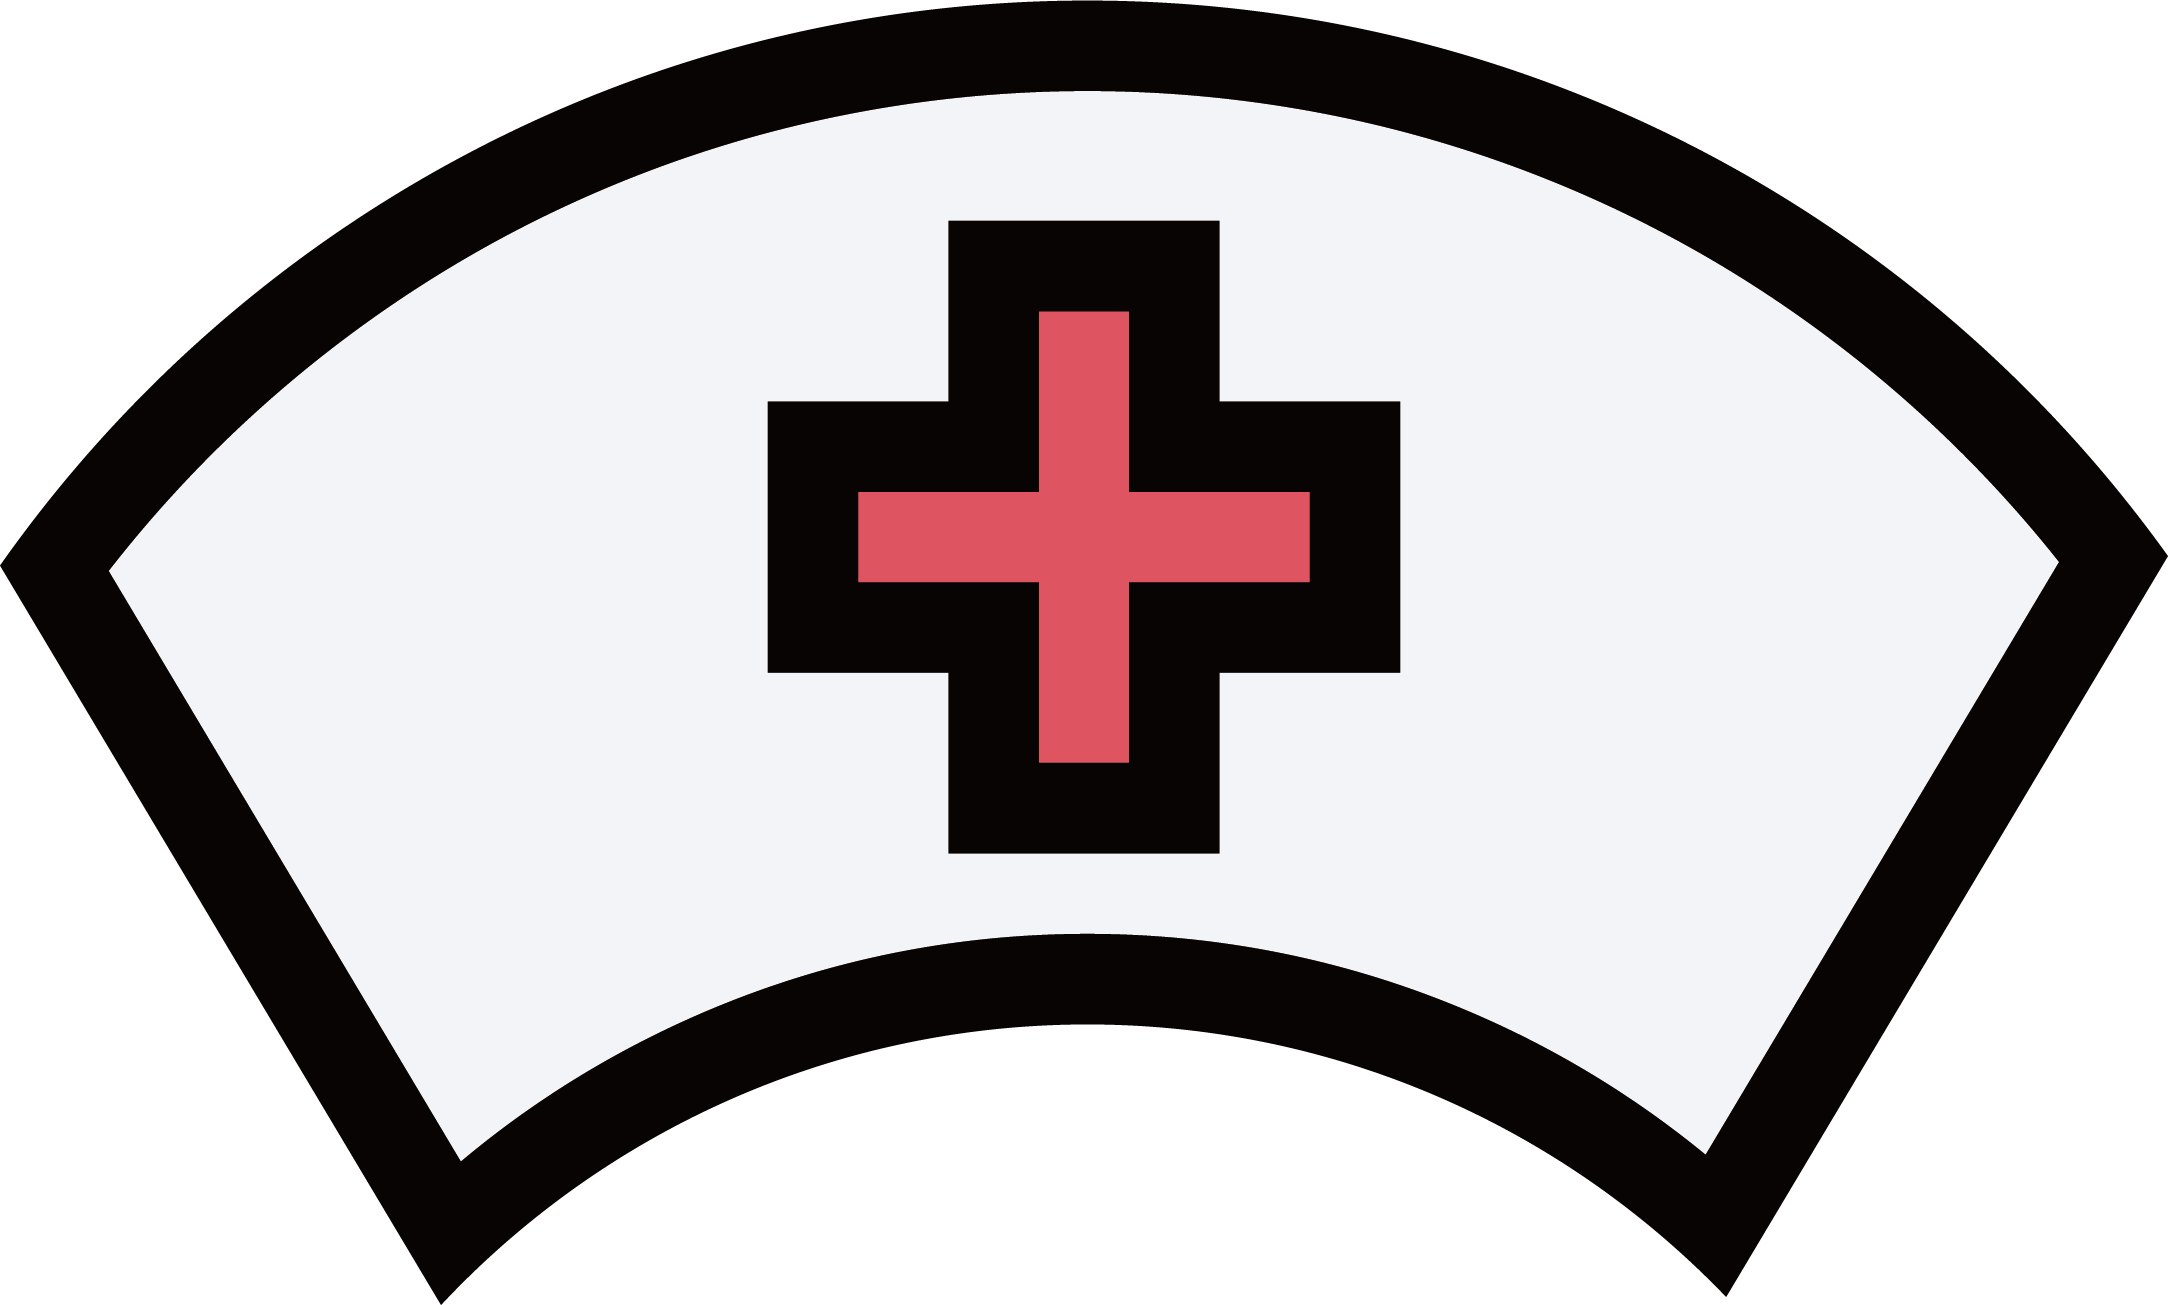 Nurse hat png. Nursing nurses cap icon